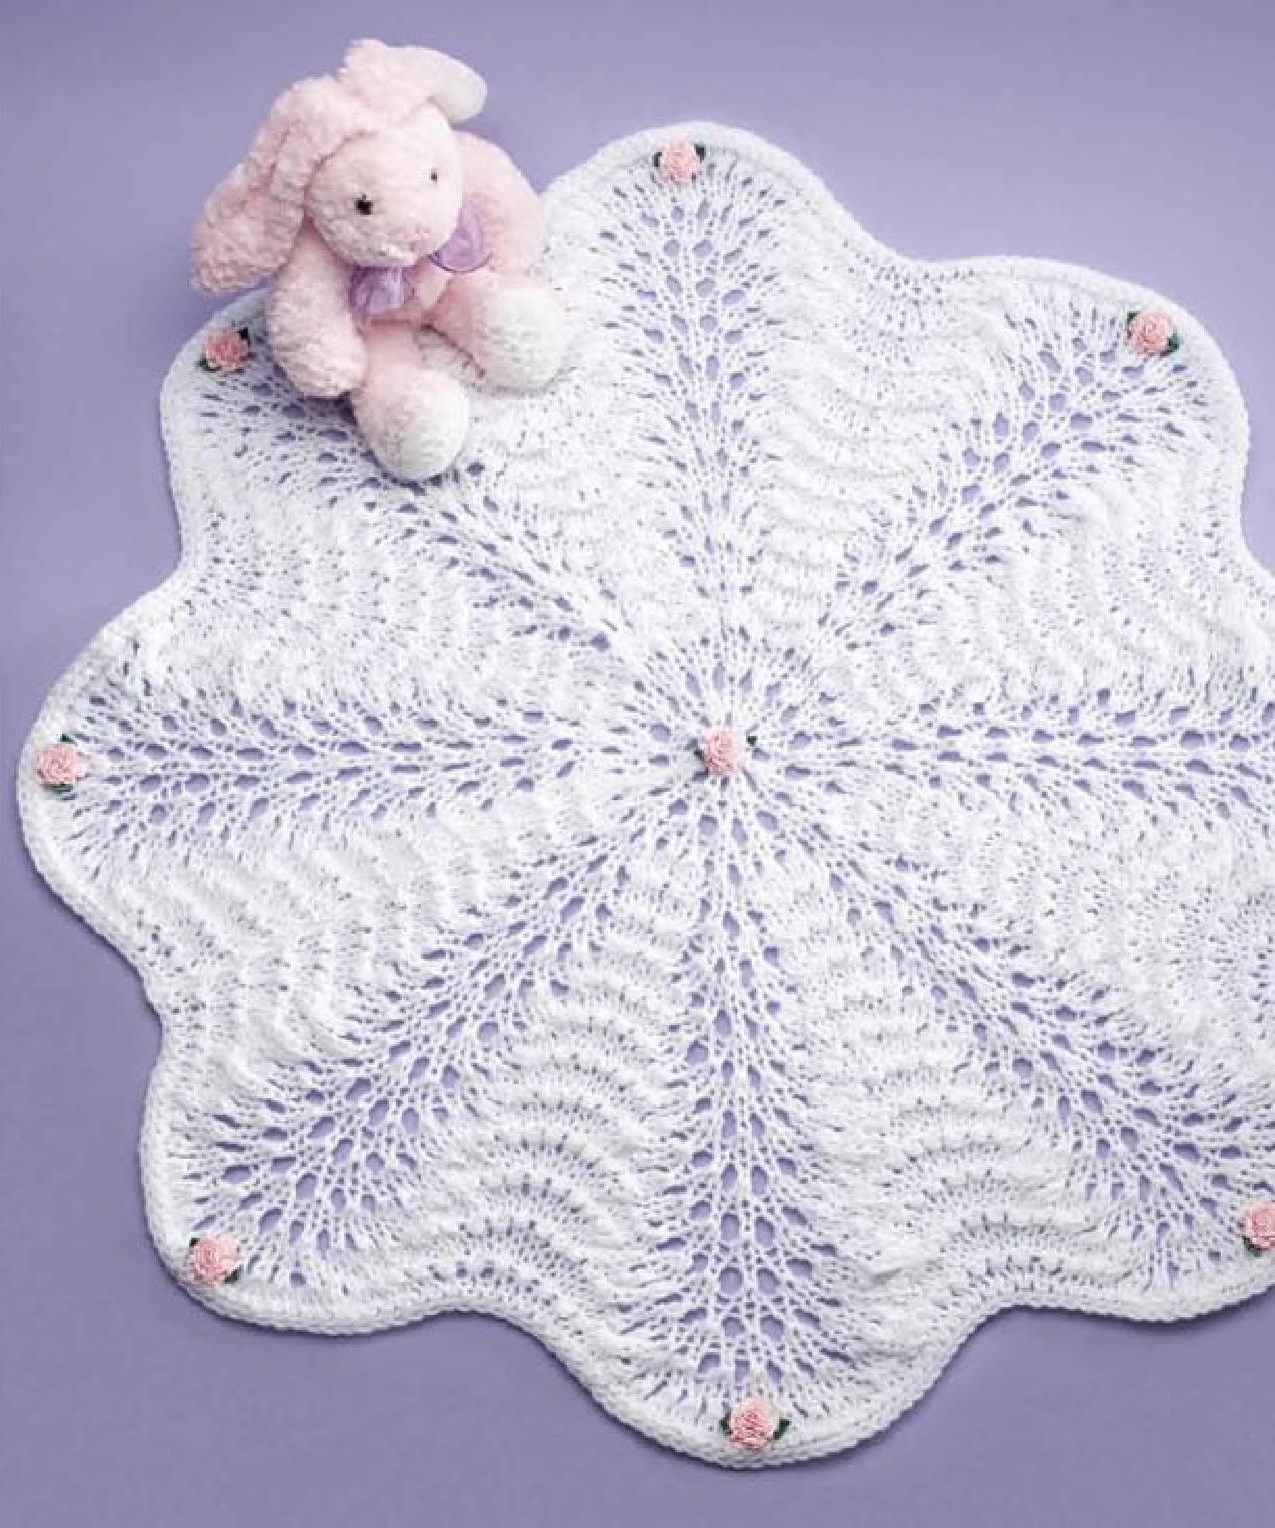 Bed of roses afghan knit pattern for baby